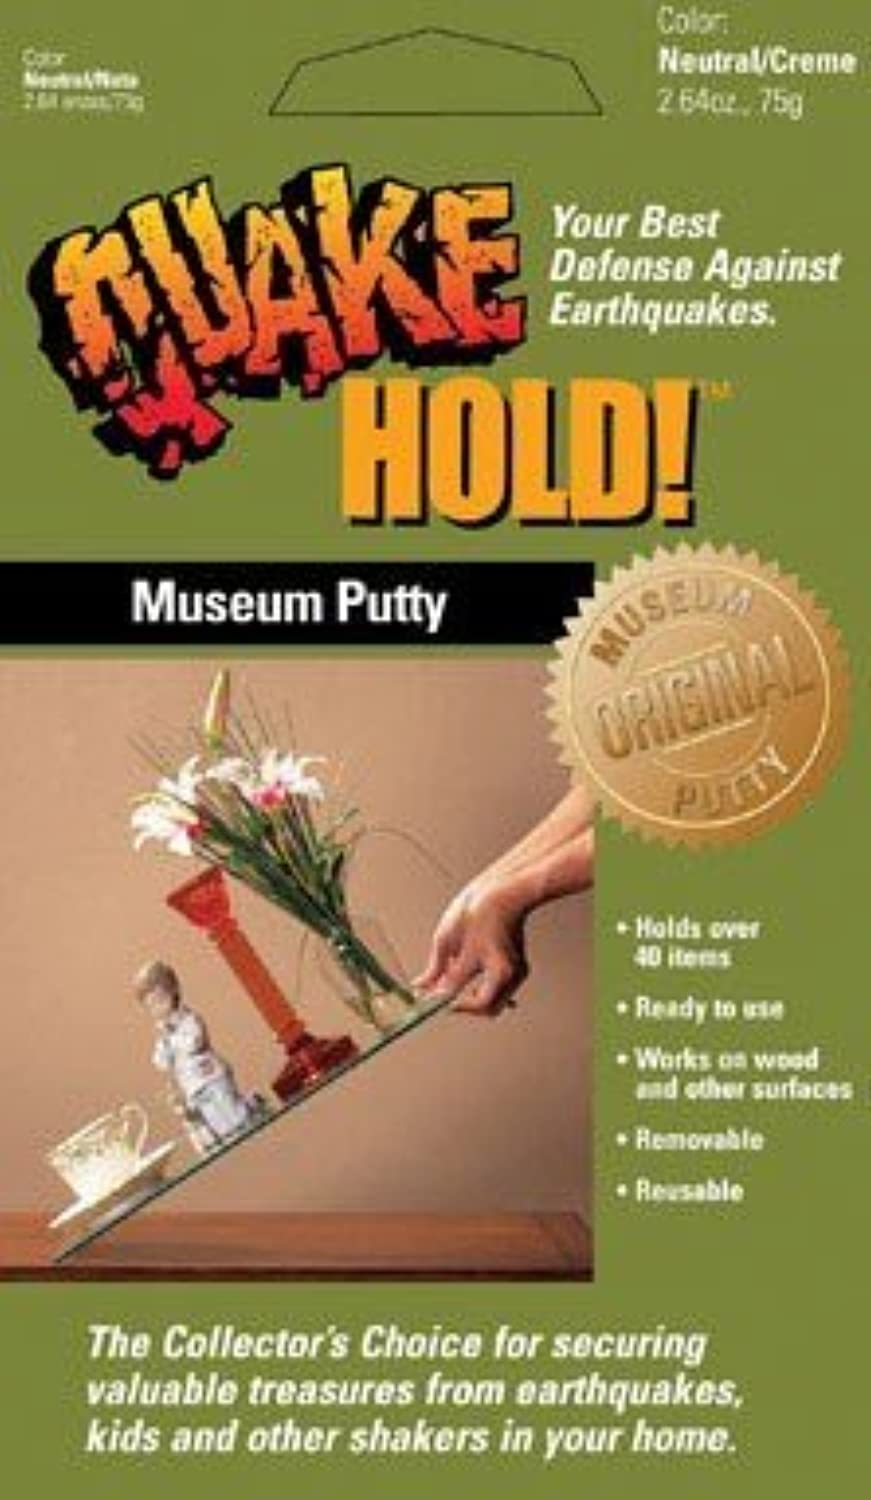 QuakeHOLD Anchoring Putty by Ready America